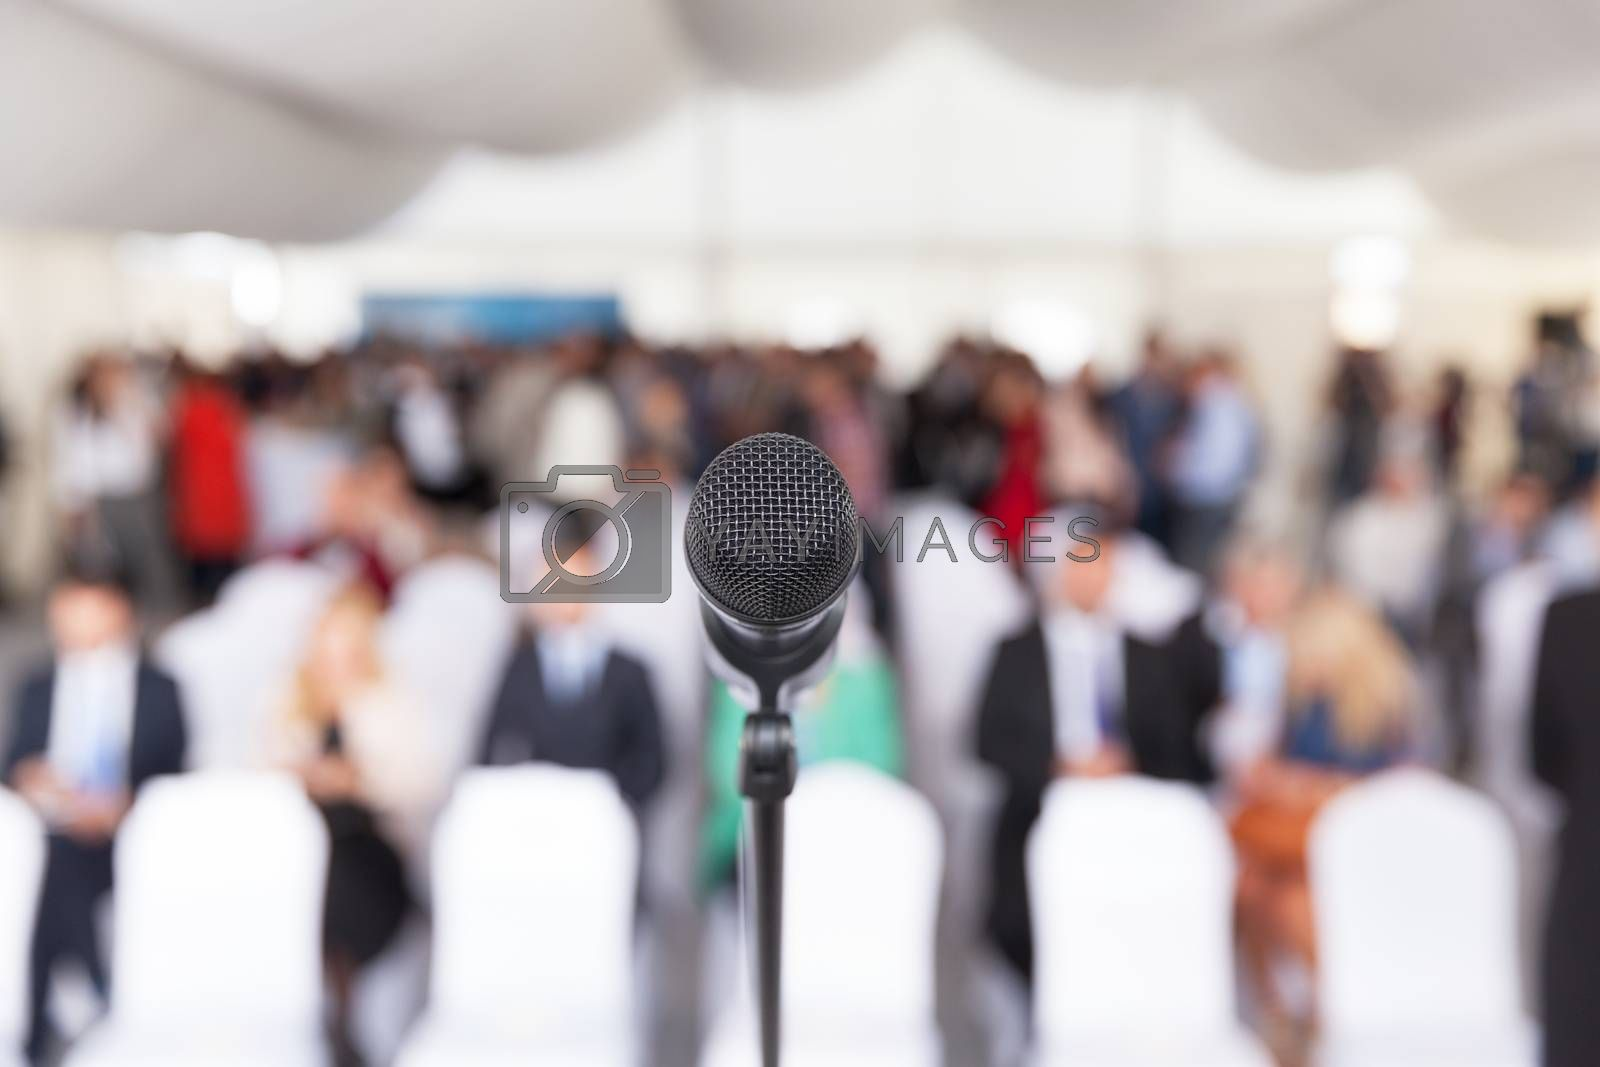 Microphone in focus against blurred audience. Participants at the business or professional conference.